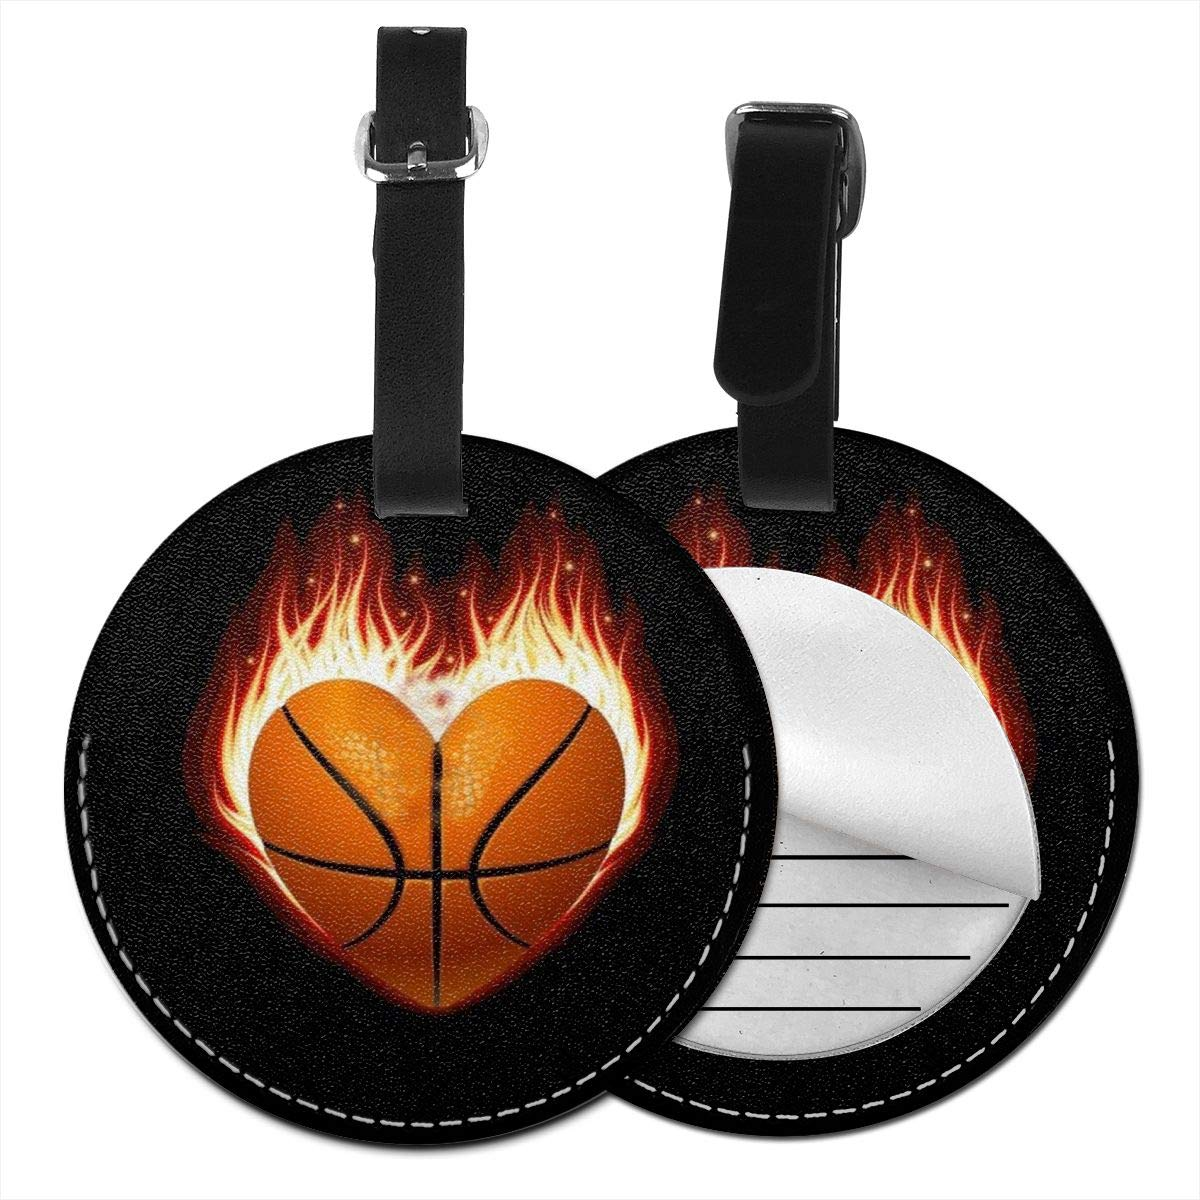 RITGOWWV PU Leather Luggage Tags 3D Print Heart Basketball On Fire Suitcase Labels Bag Travel Accessories